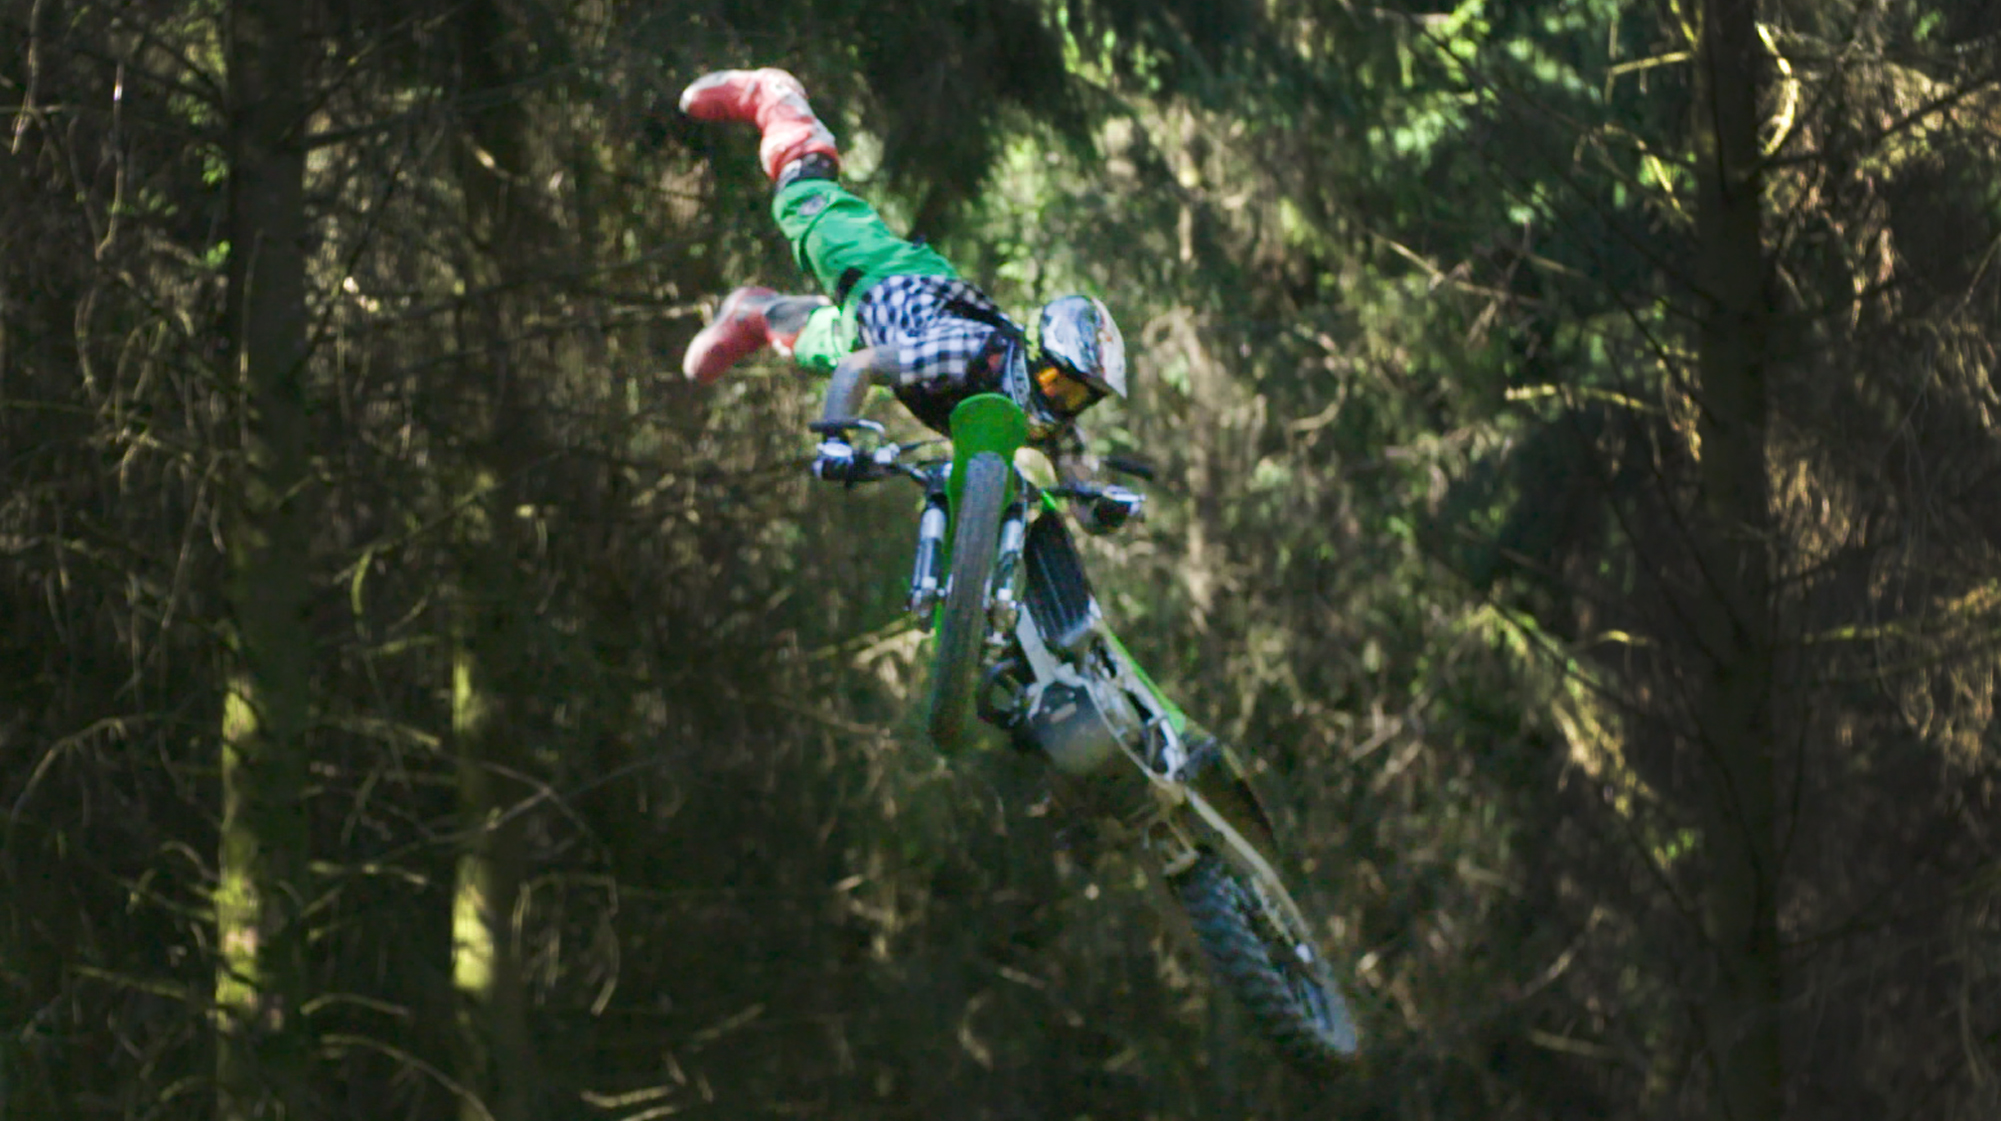 Motocross - Athlete Film